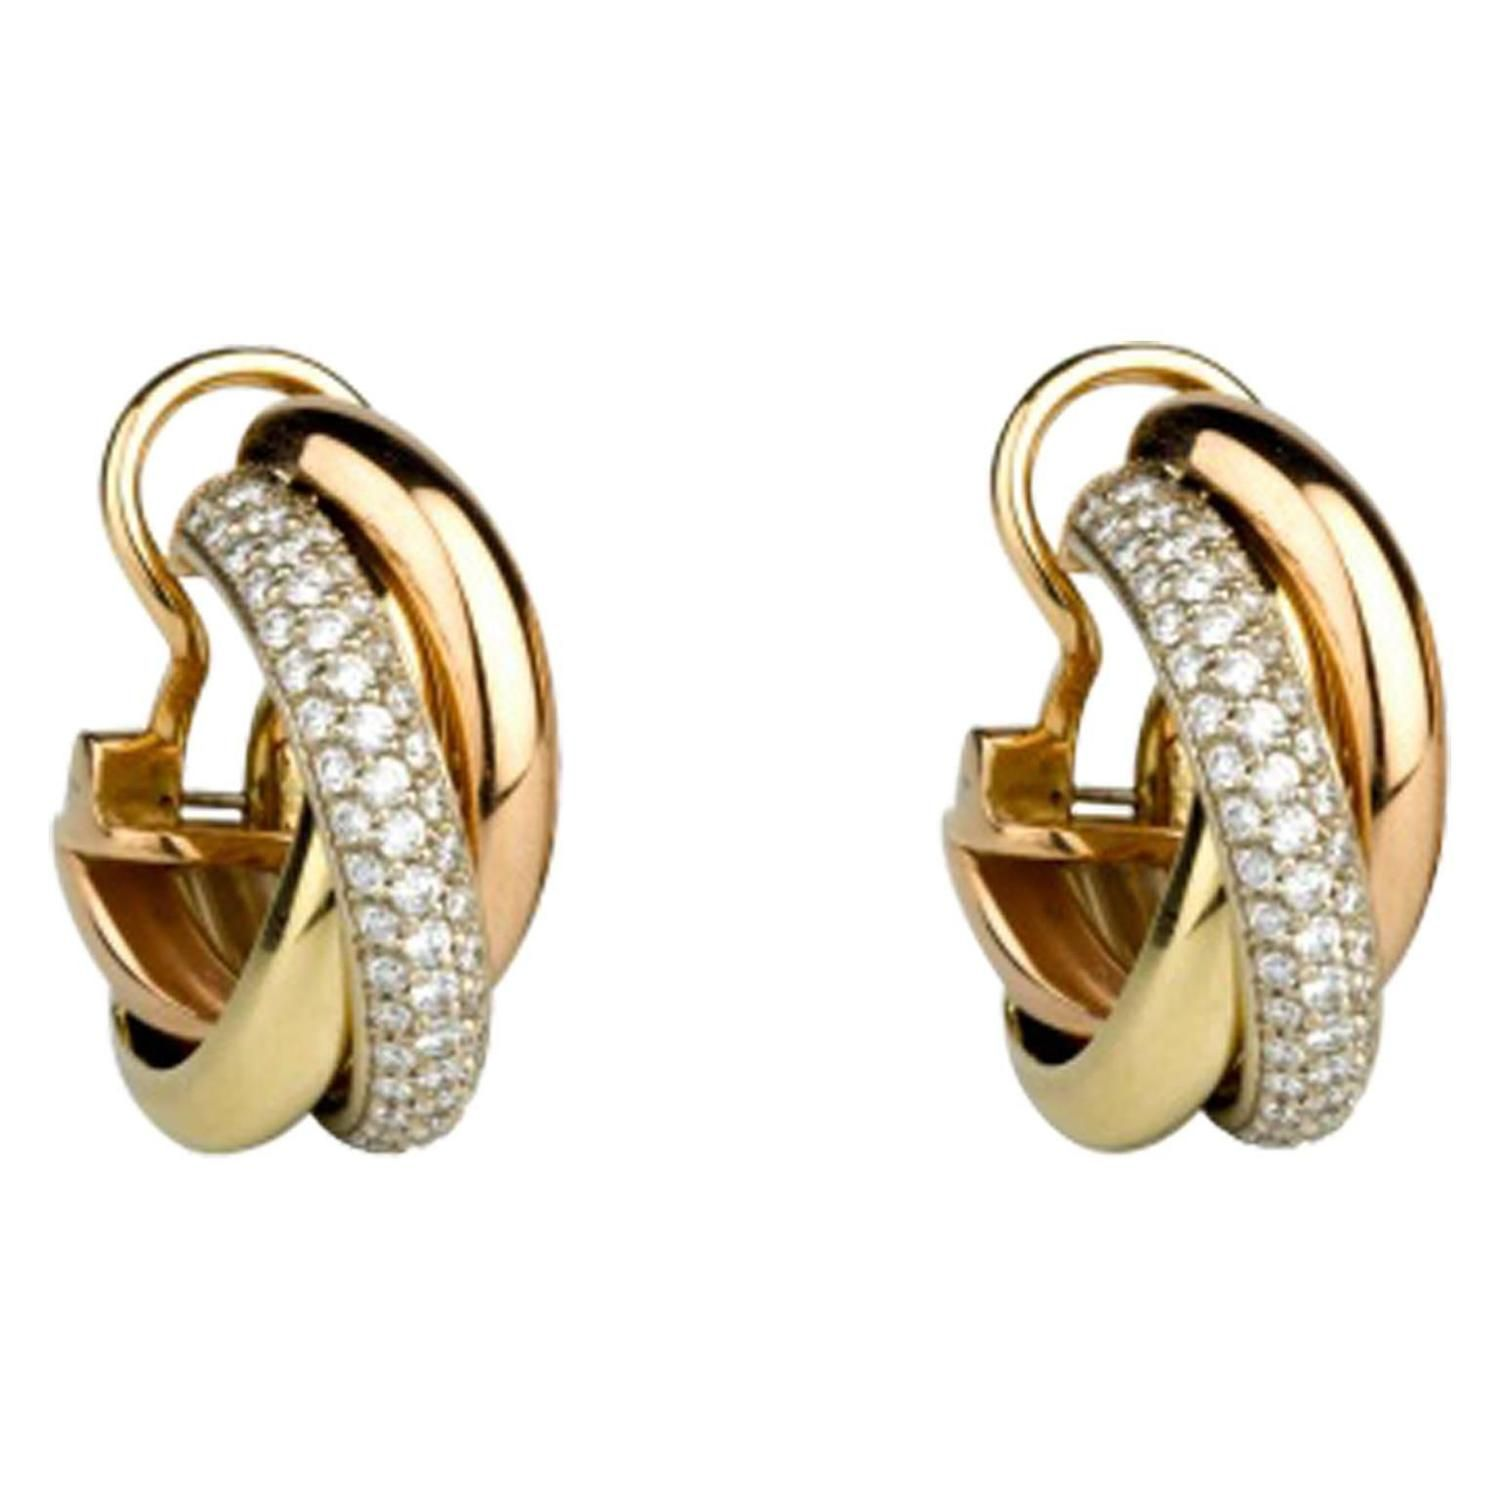 trinity cartier de enlarged jewelry earrings diamond drop products